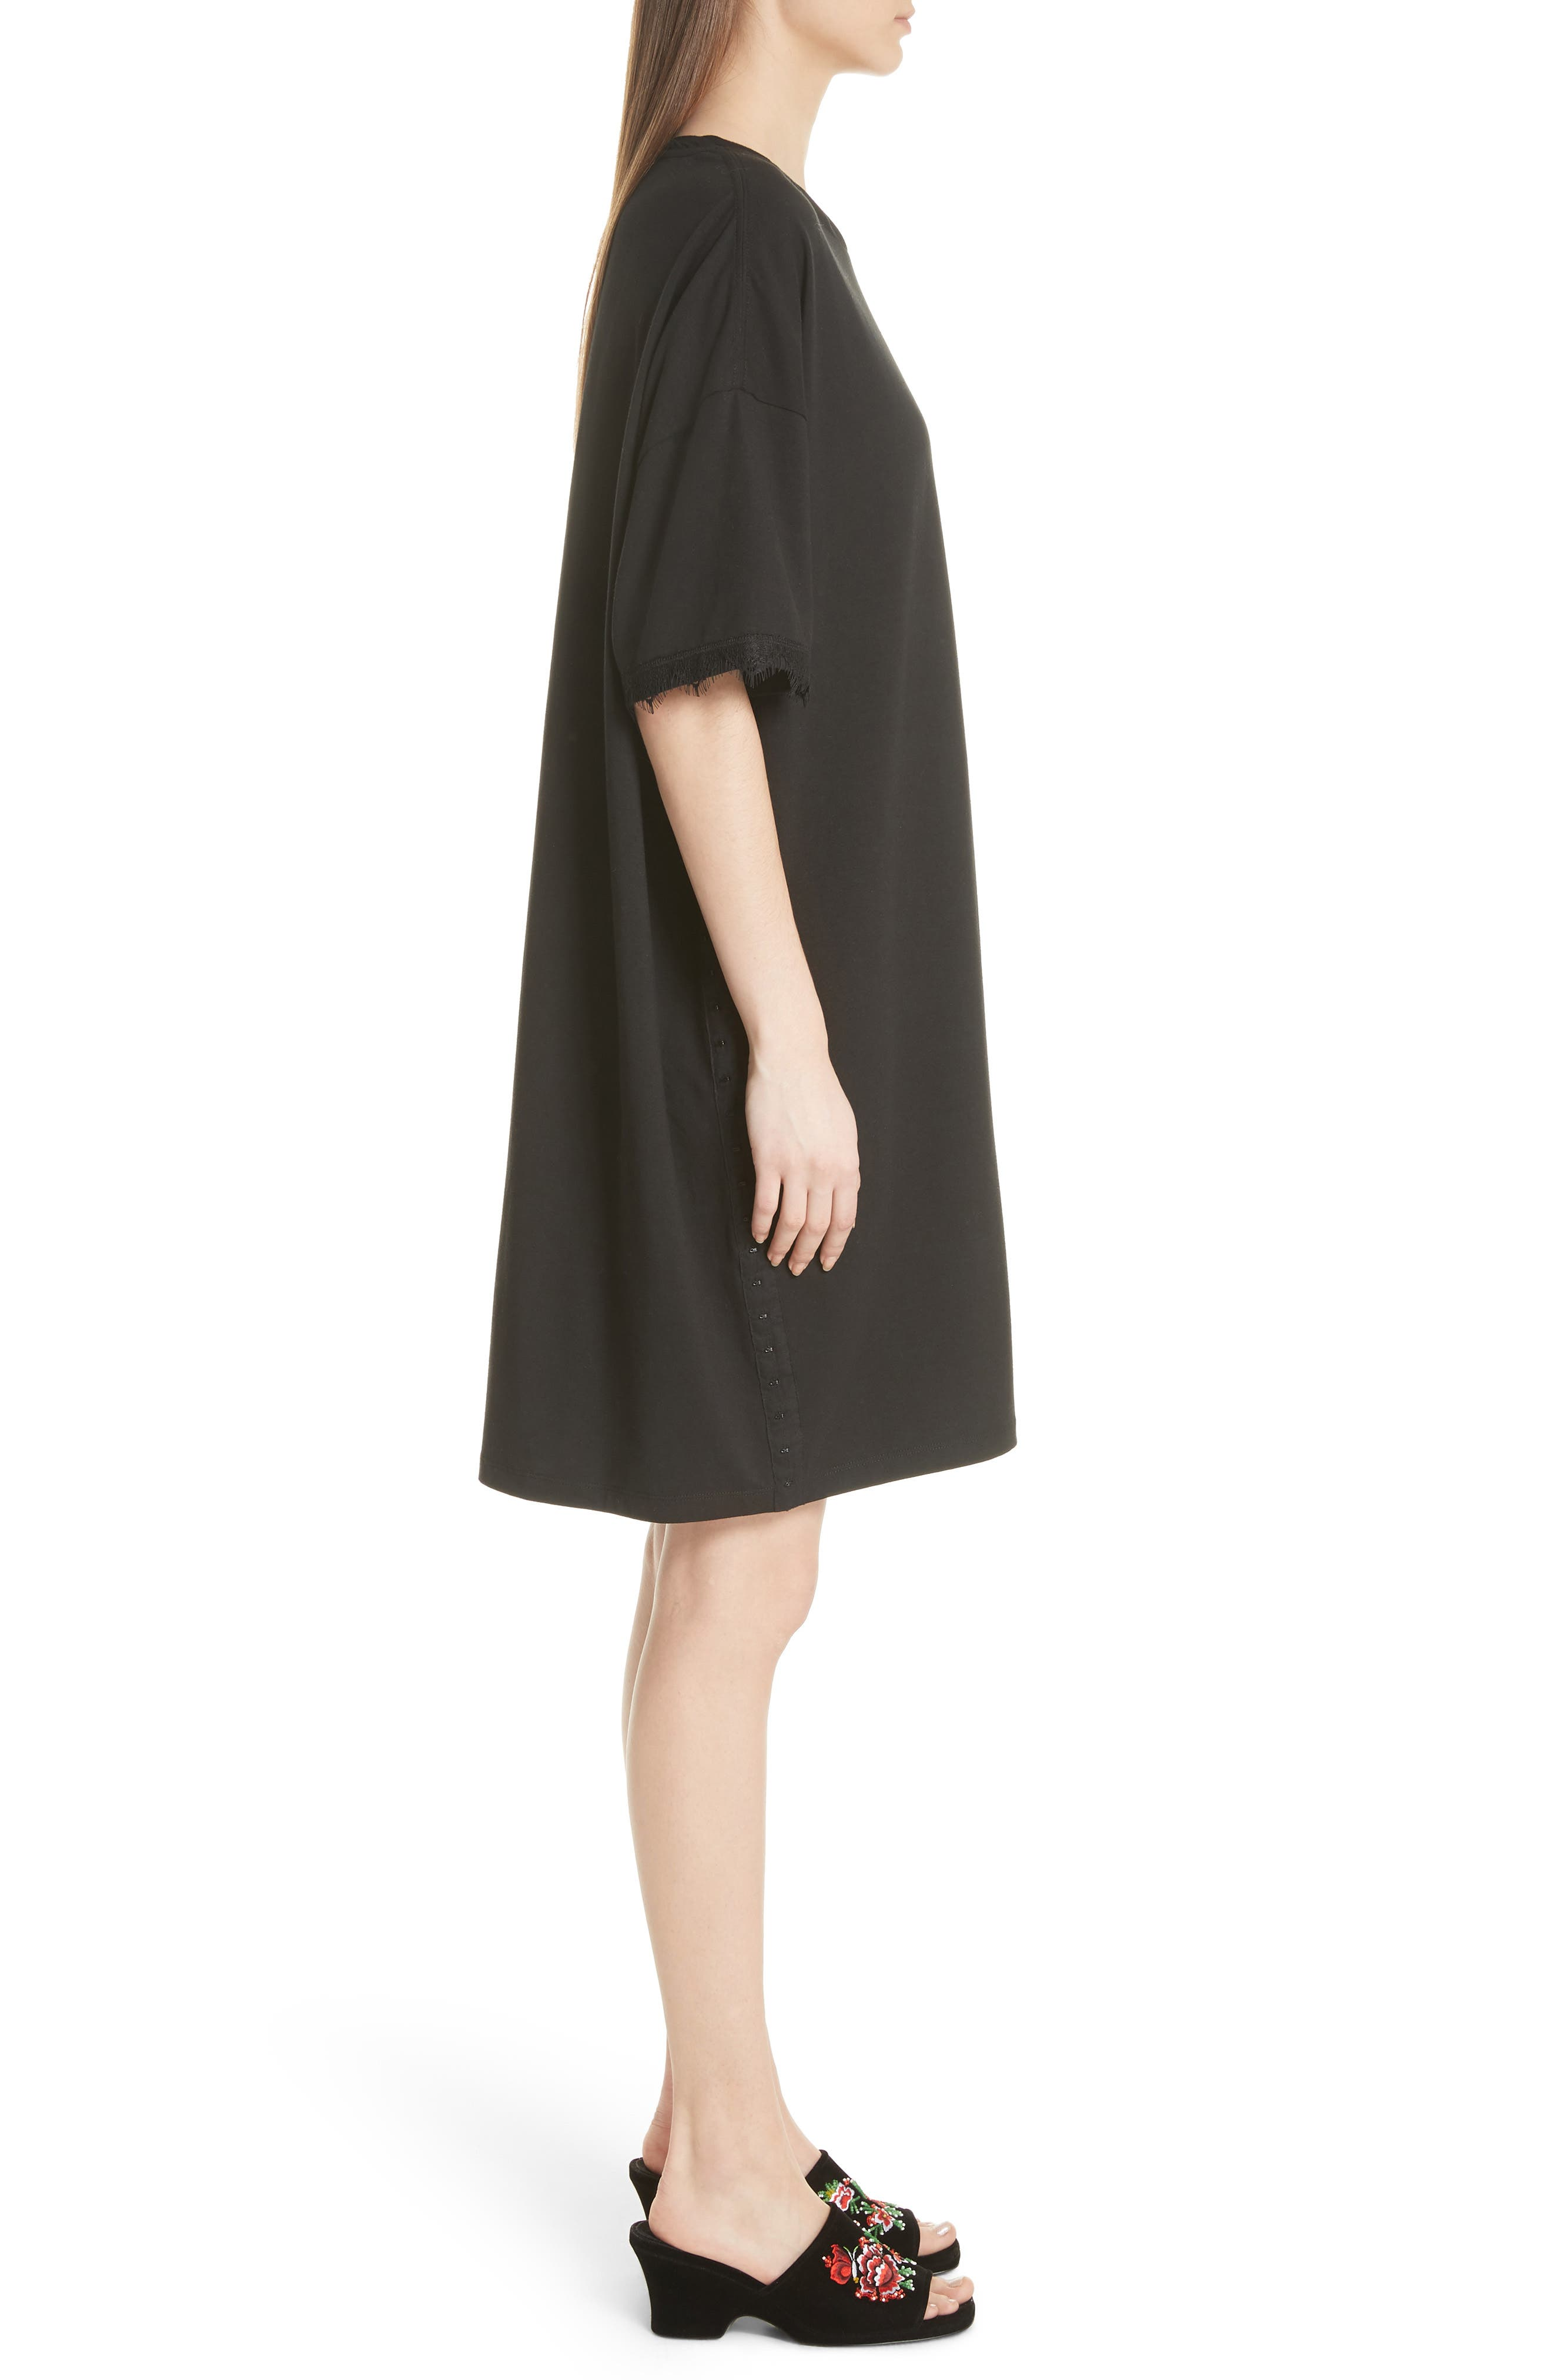 OPENING CEREMONY,                             Hook-and-Eye T-Shirt Dress,                             Alternate thumbnail 4, color,                             014